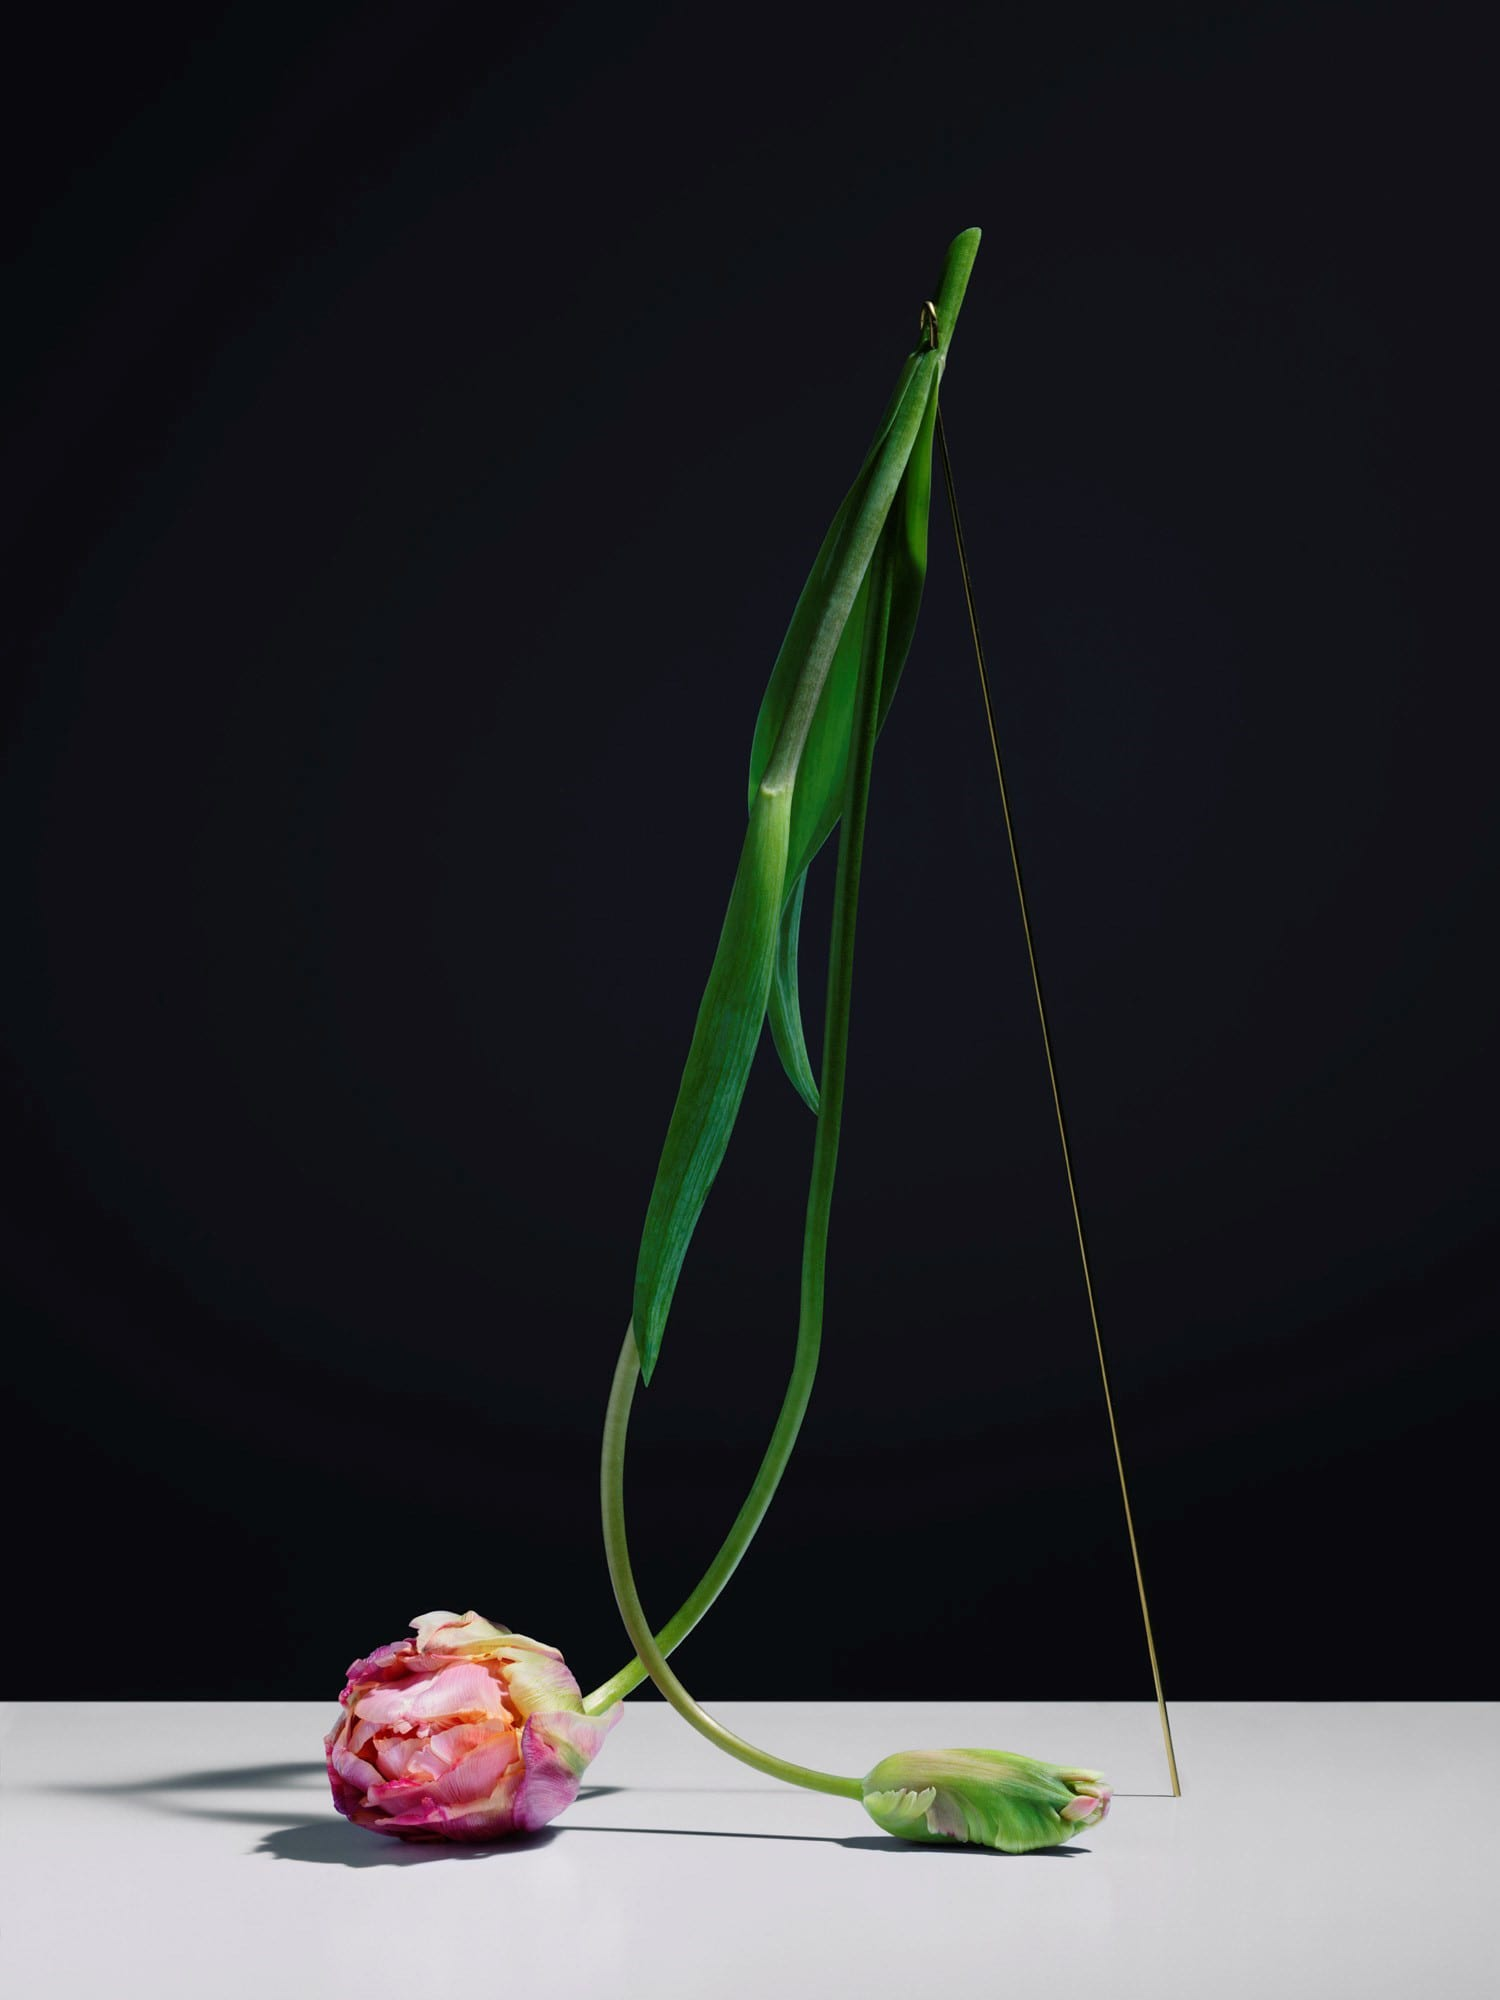 Carl Kleiner Choreography of dying tulip (3)